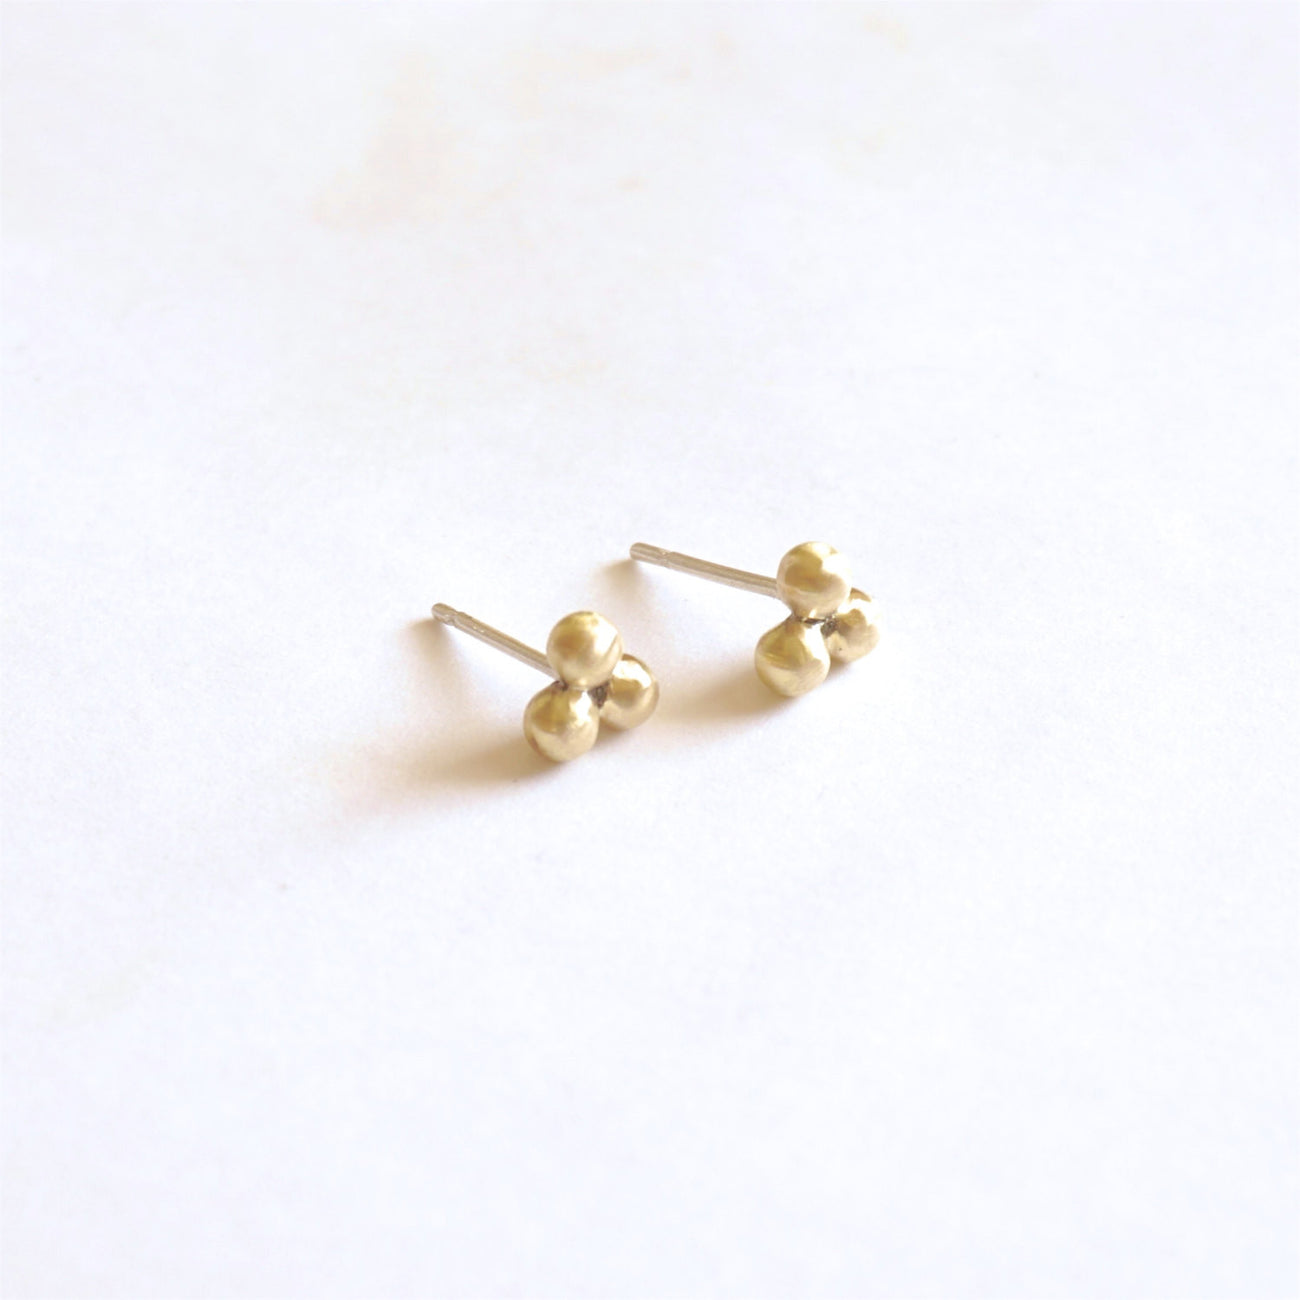 Understated and Stylish Hand-Made Three Ball Stud Earrings  - 0243 - Virginia Wynne Designs